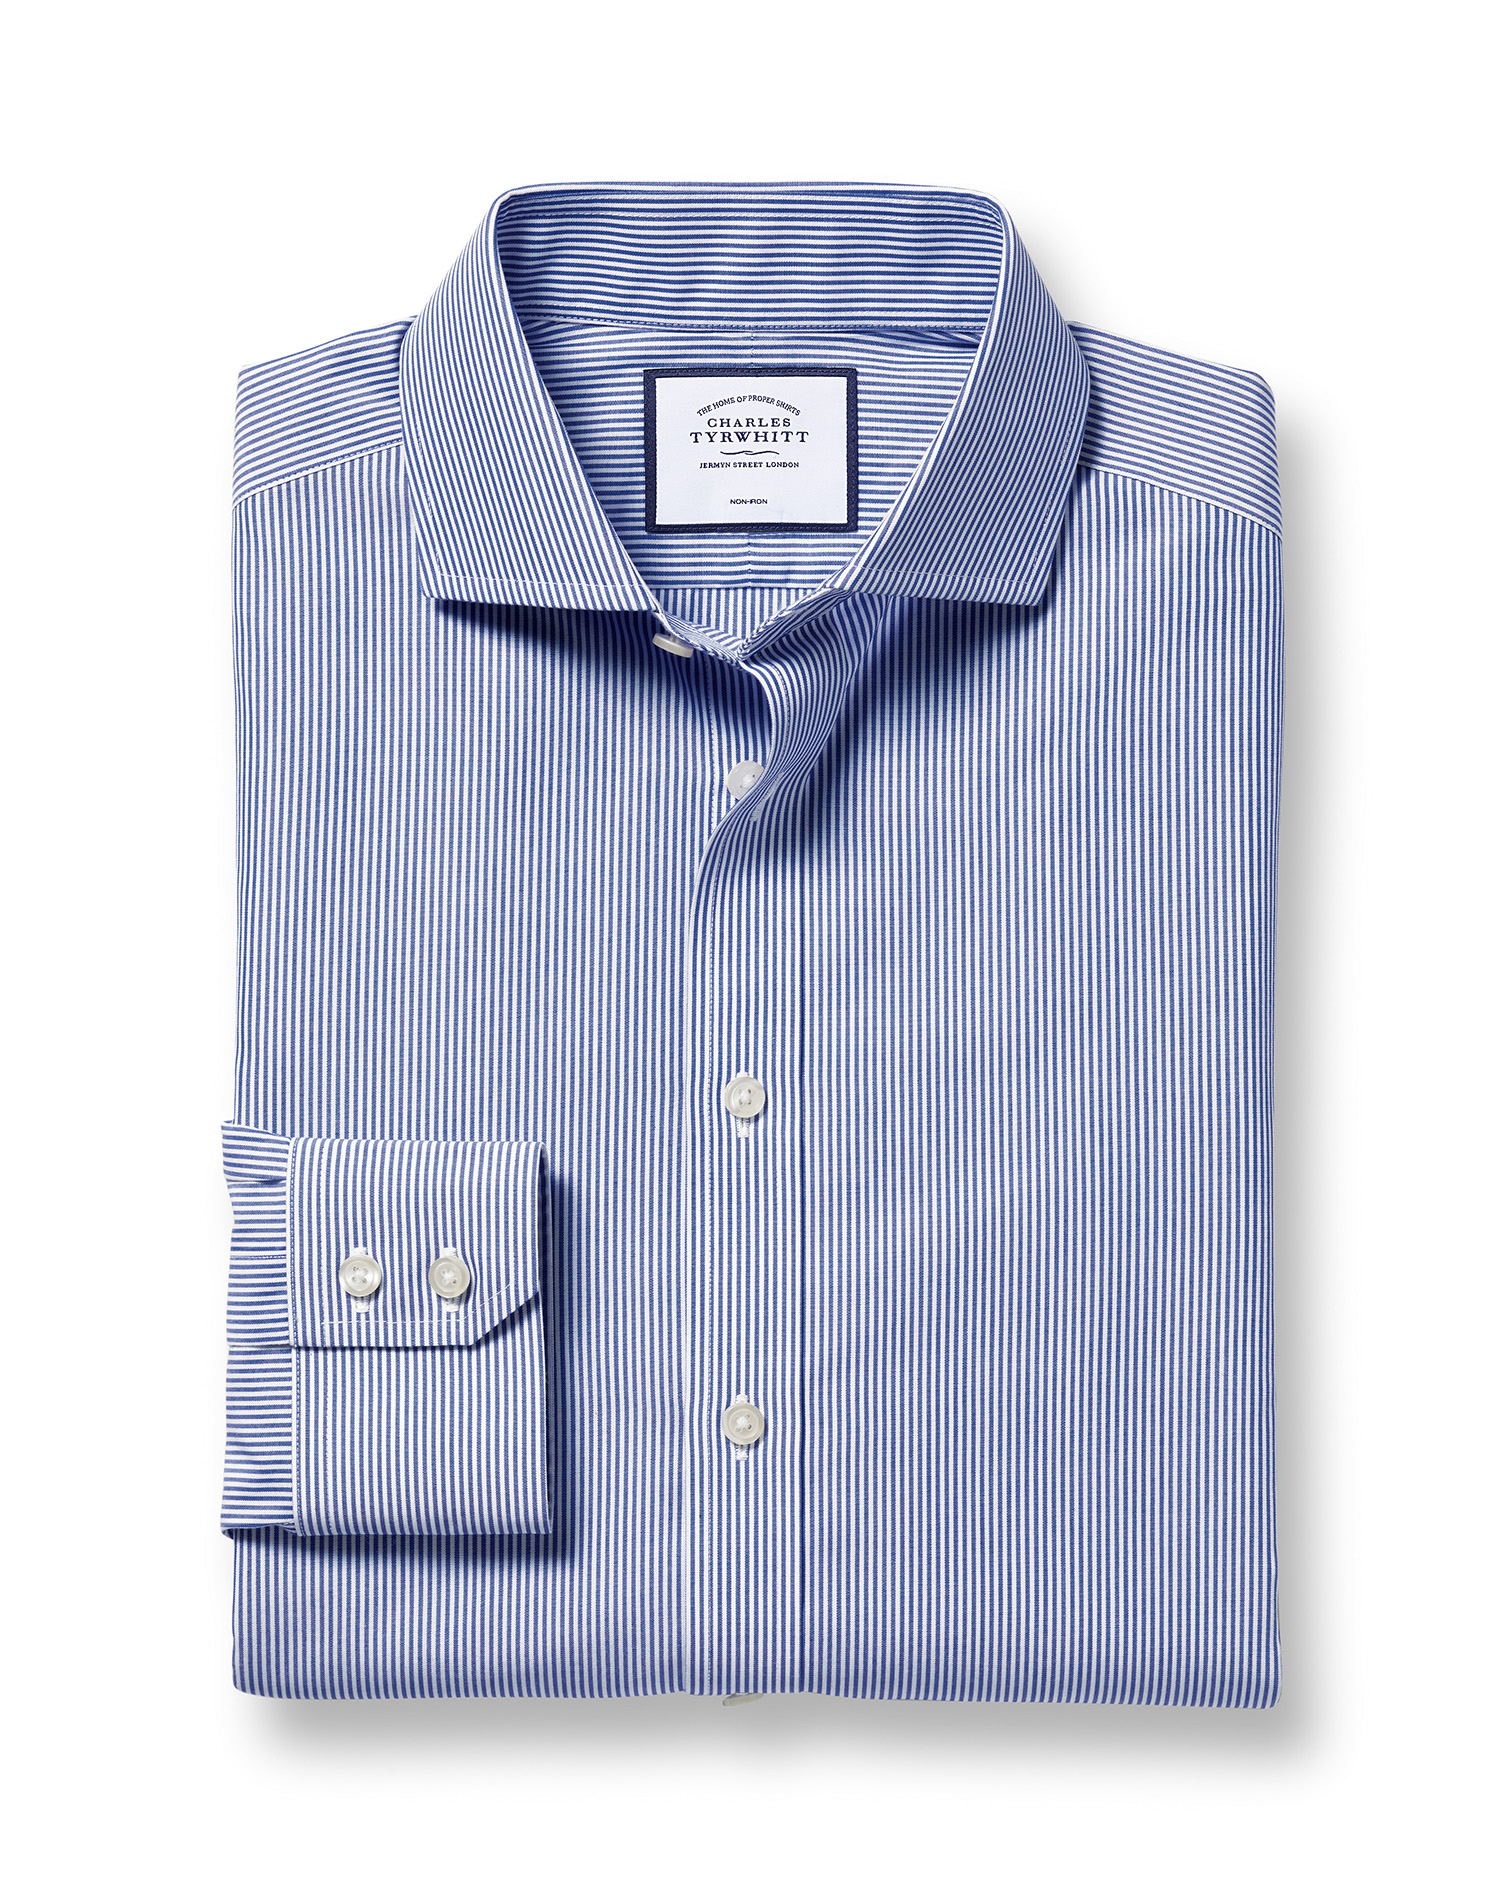 Slim Fit Cutaway Non-Iron Bengal Stripe Navy Cotton Formal Shirt Double Cuff Size 17/36 by Charles T